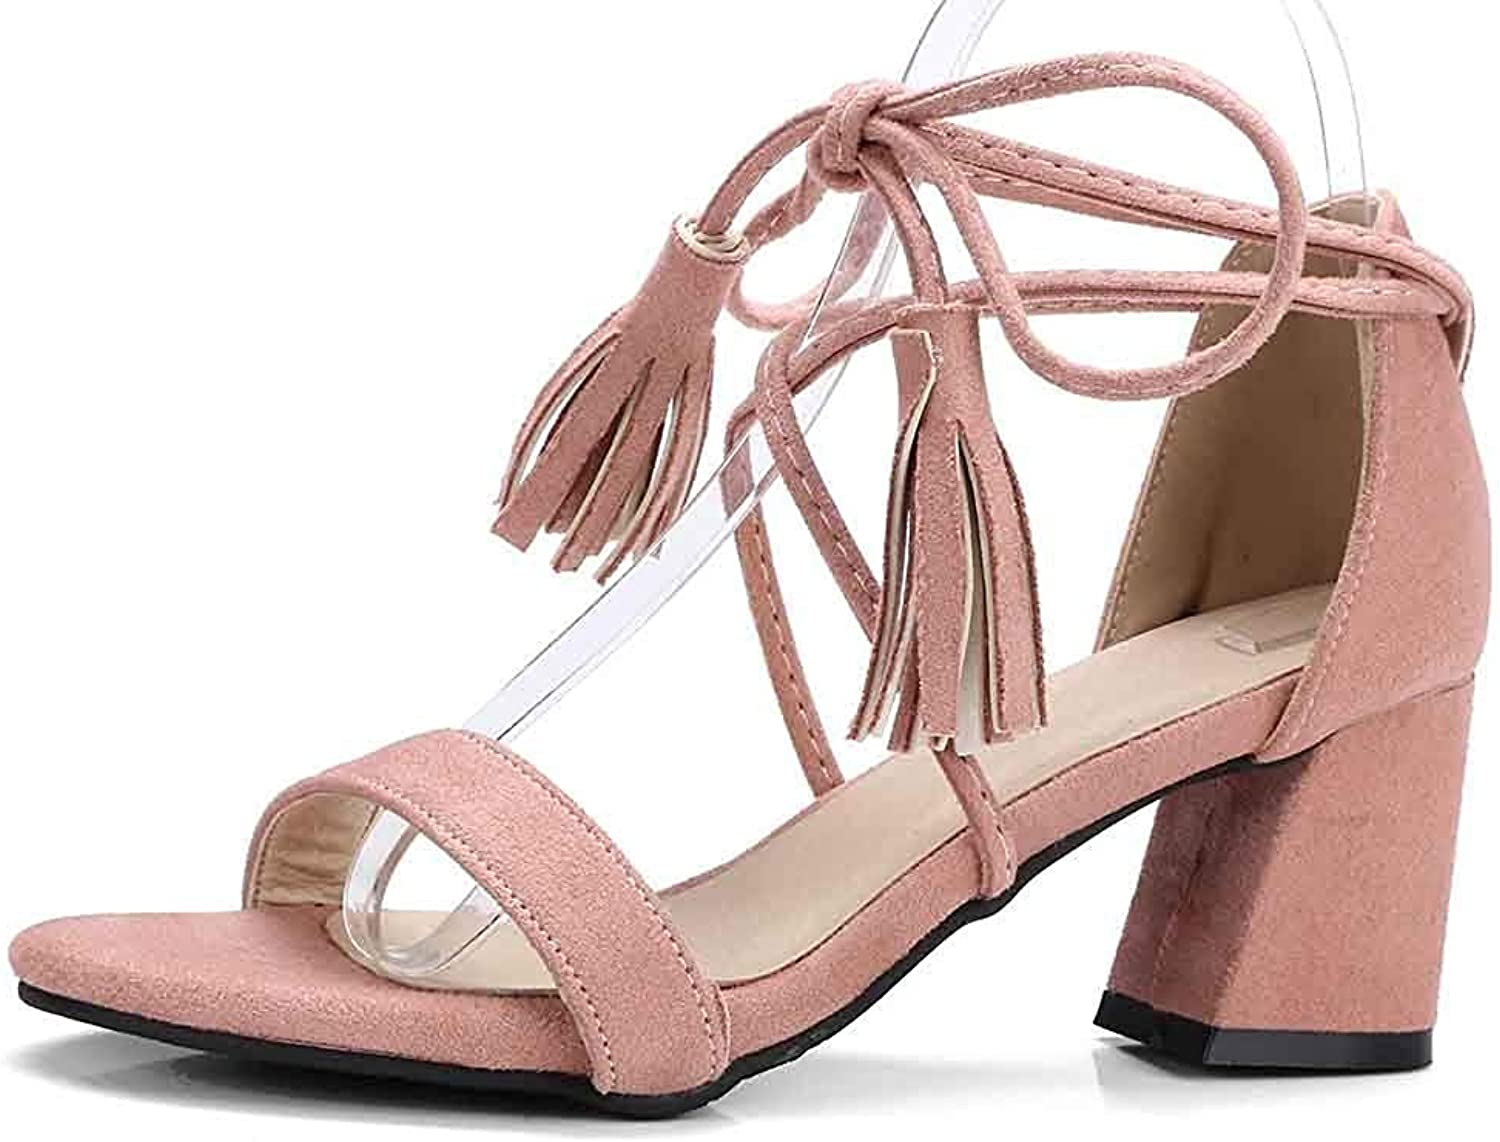 Unm Women's Sandals with Ankle Strap - Tasseled Mid Chunky Heel Lace up - Open Toe Dressy Self Tie